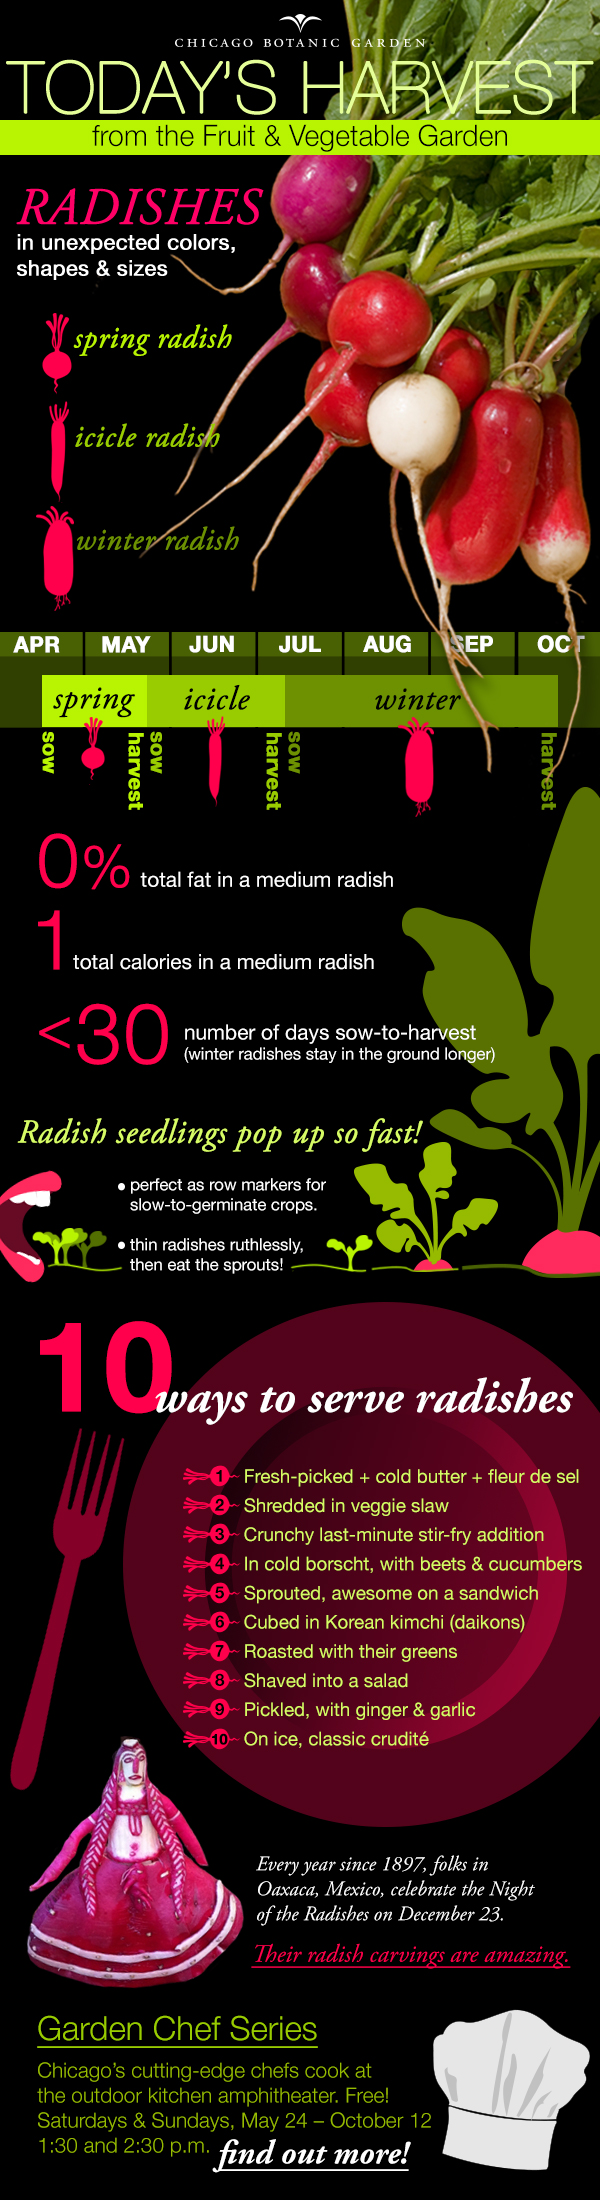 DIAGRAM: Infographic of radish cultivation, harvest, and dining facts.